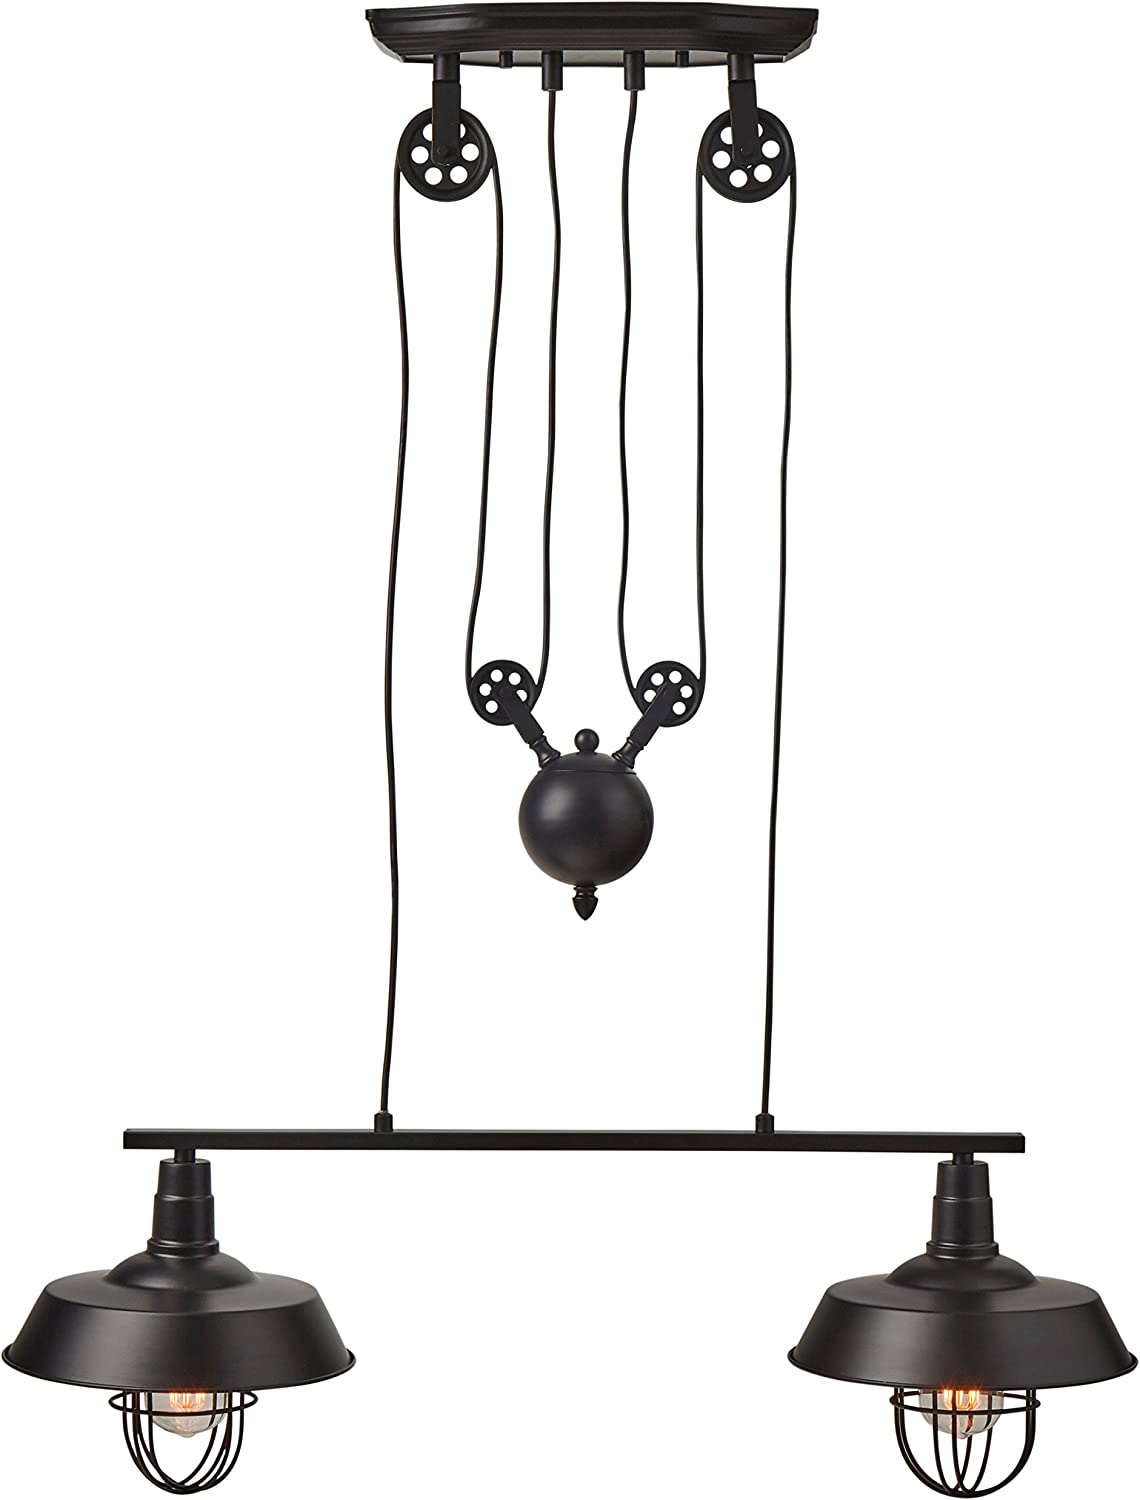 Stone Beam Industrial Farmhouse Pulley Double Cage Pendant Hanging Ceiling Chandelier With Light Bulbs – 32 Inch, 40 – 65 Inch Cord, Black